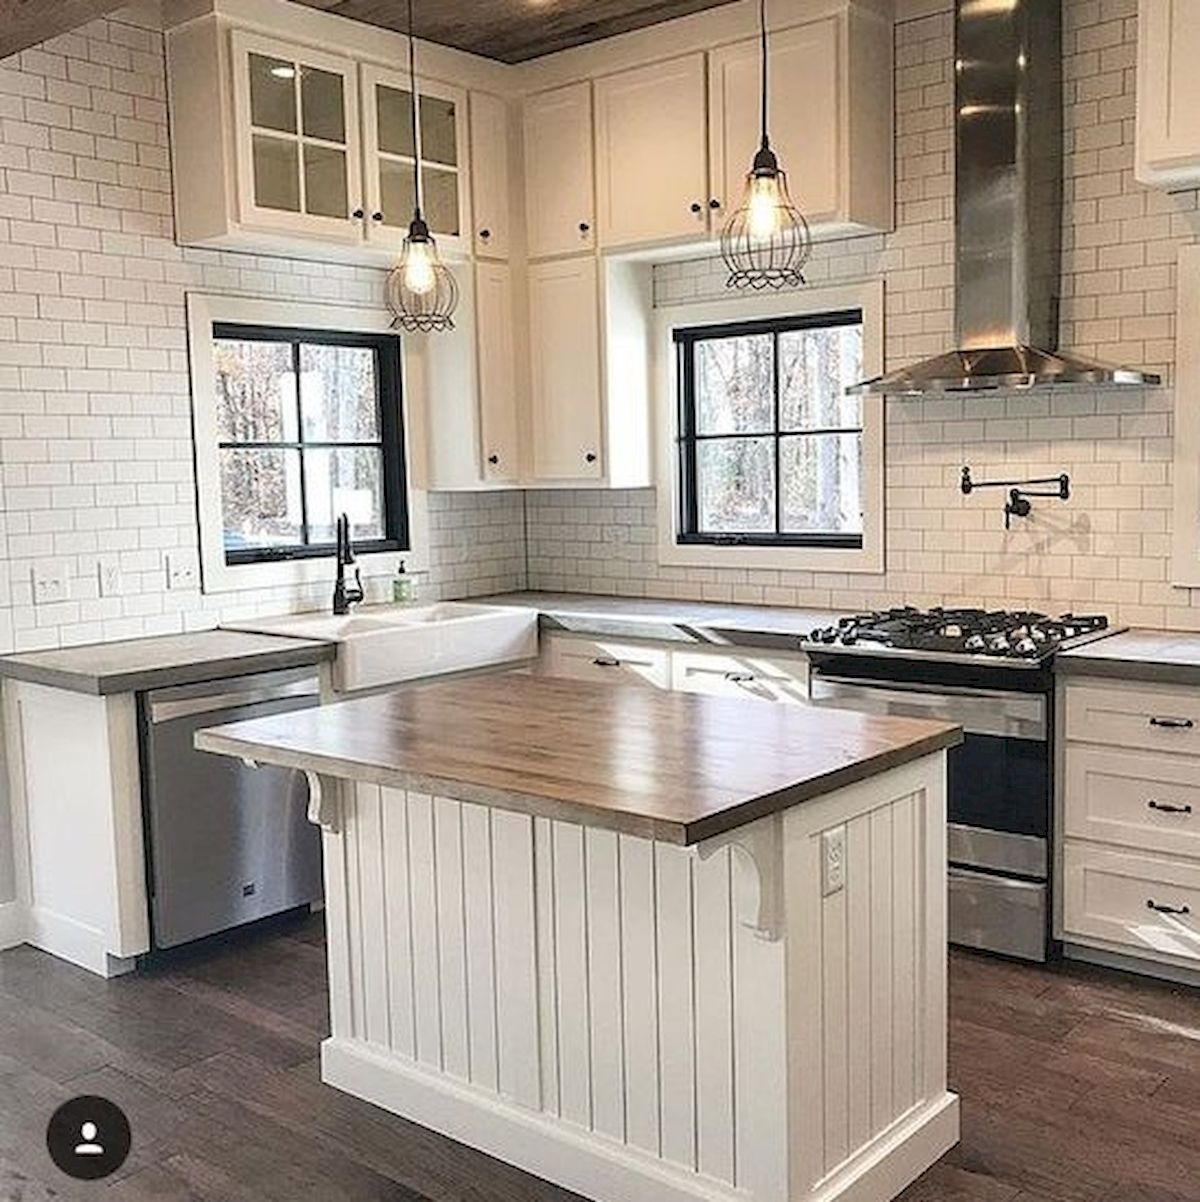 Farmhouse Kitchen Cabinets: 60 Great Farmhouse Kitchen Countertops Design Ideas And